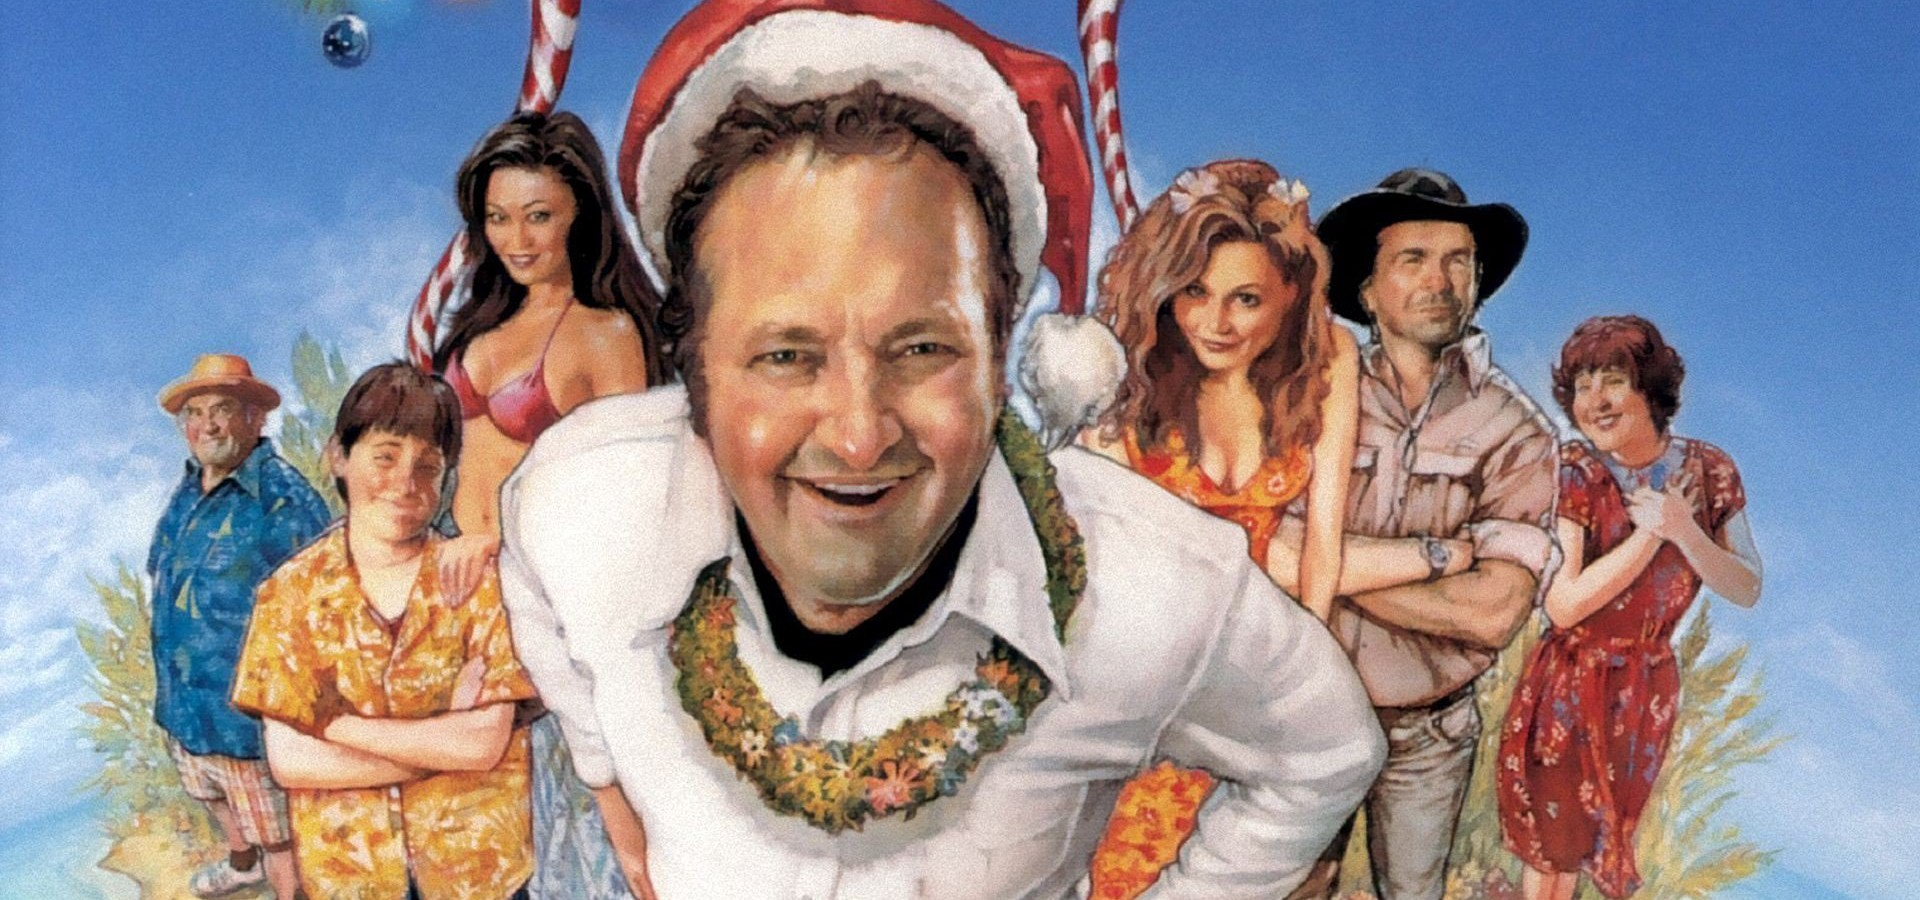 National Lampoon's - Vacanze di Natale